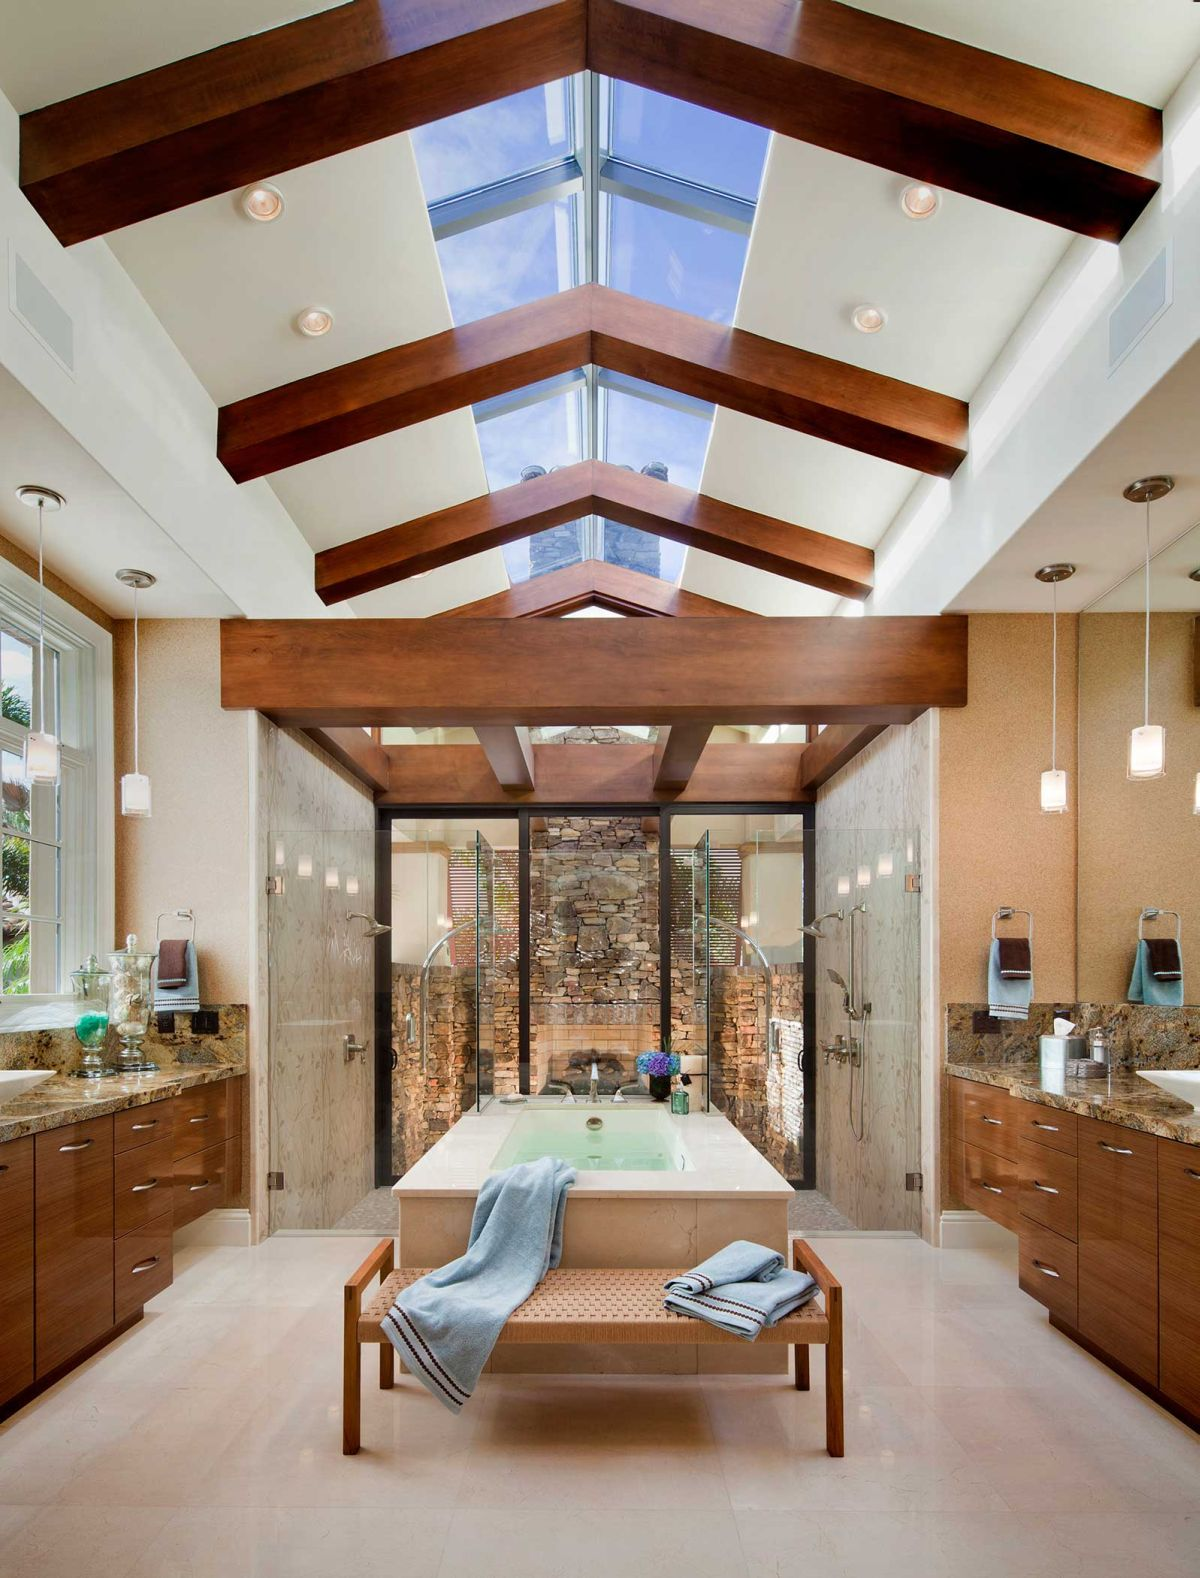 Master Bathroom With Vaulted Ceiling And Skylight